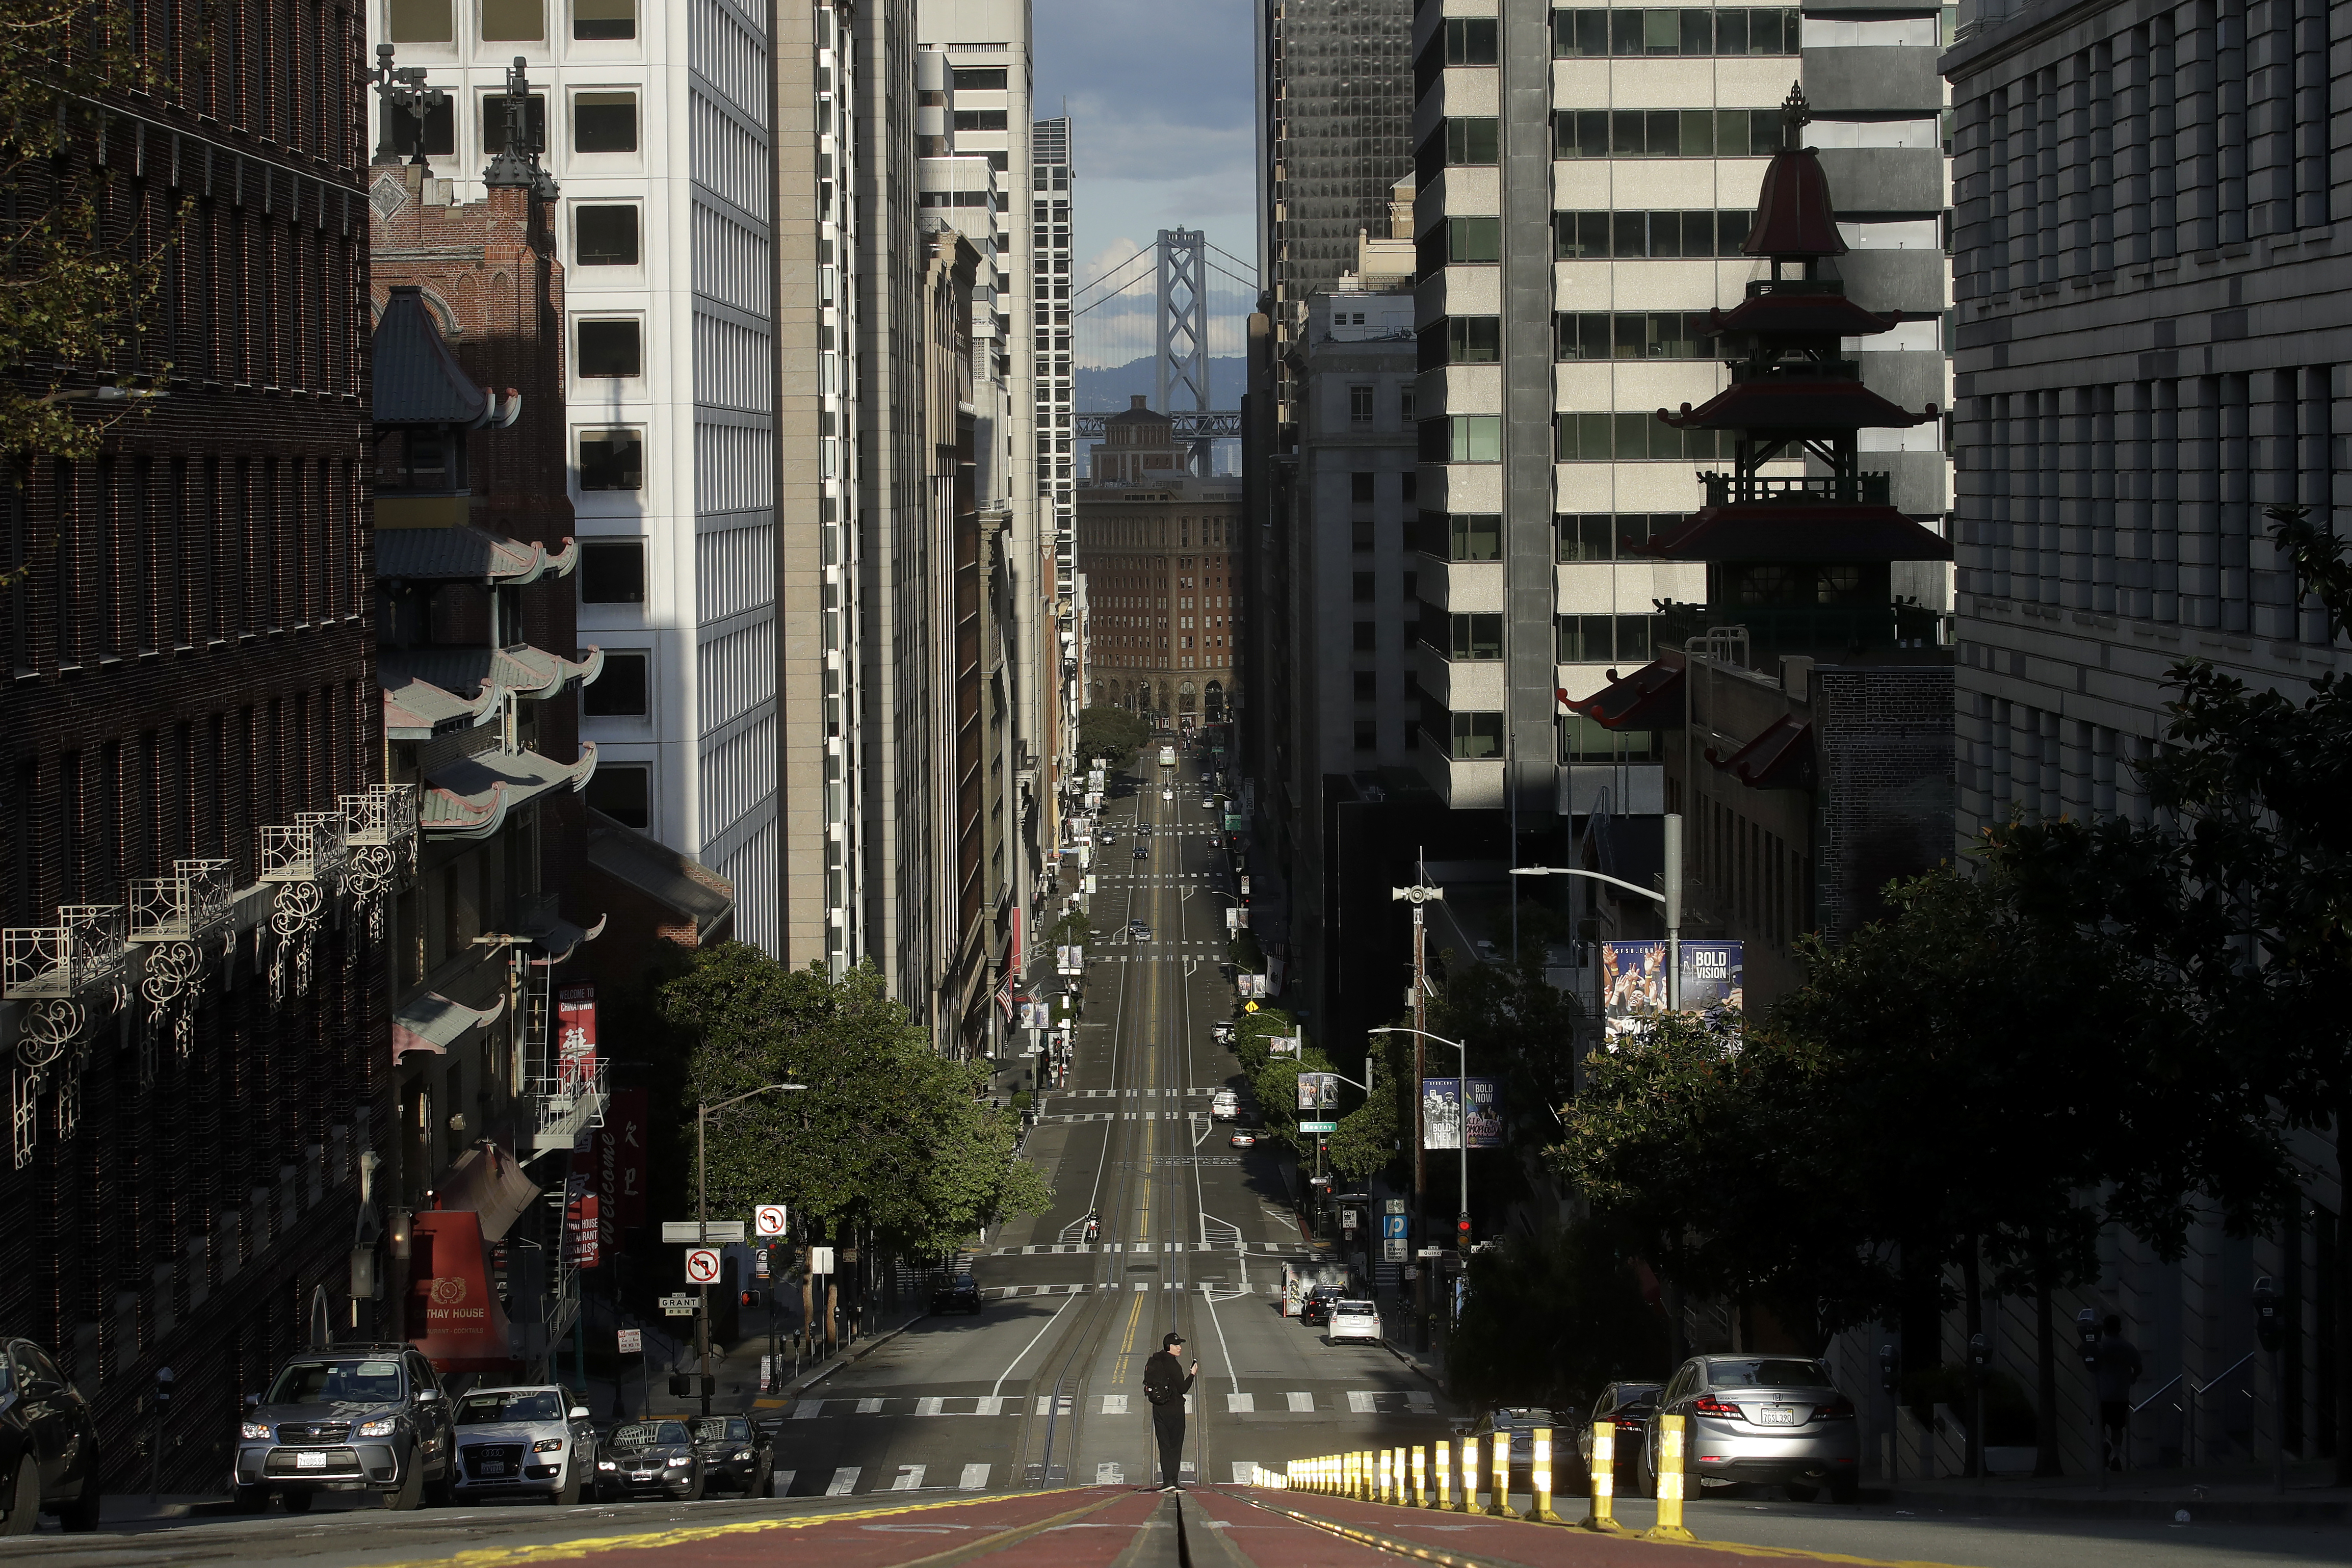 A man stands in the middle of a cable car tracks on a near empty street.